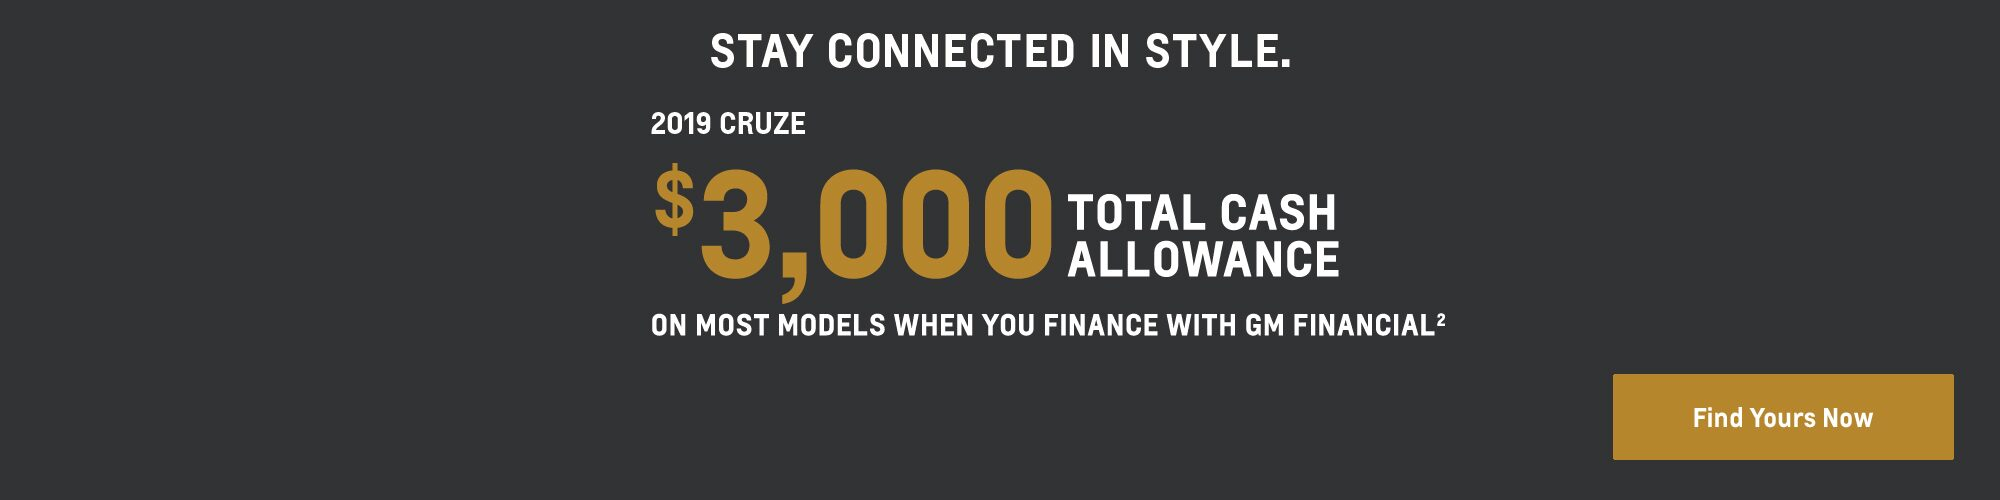 2019 Cruze: $3,000 Total Cash Allowance